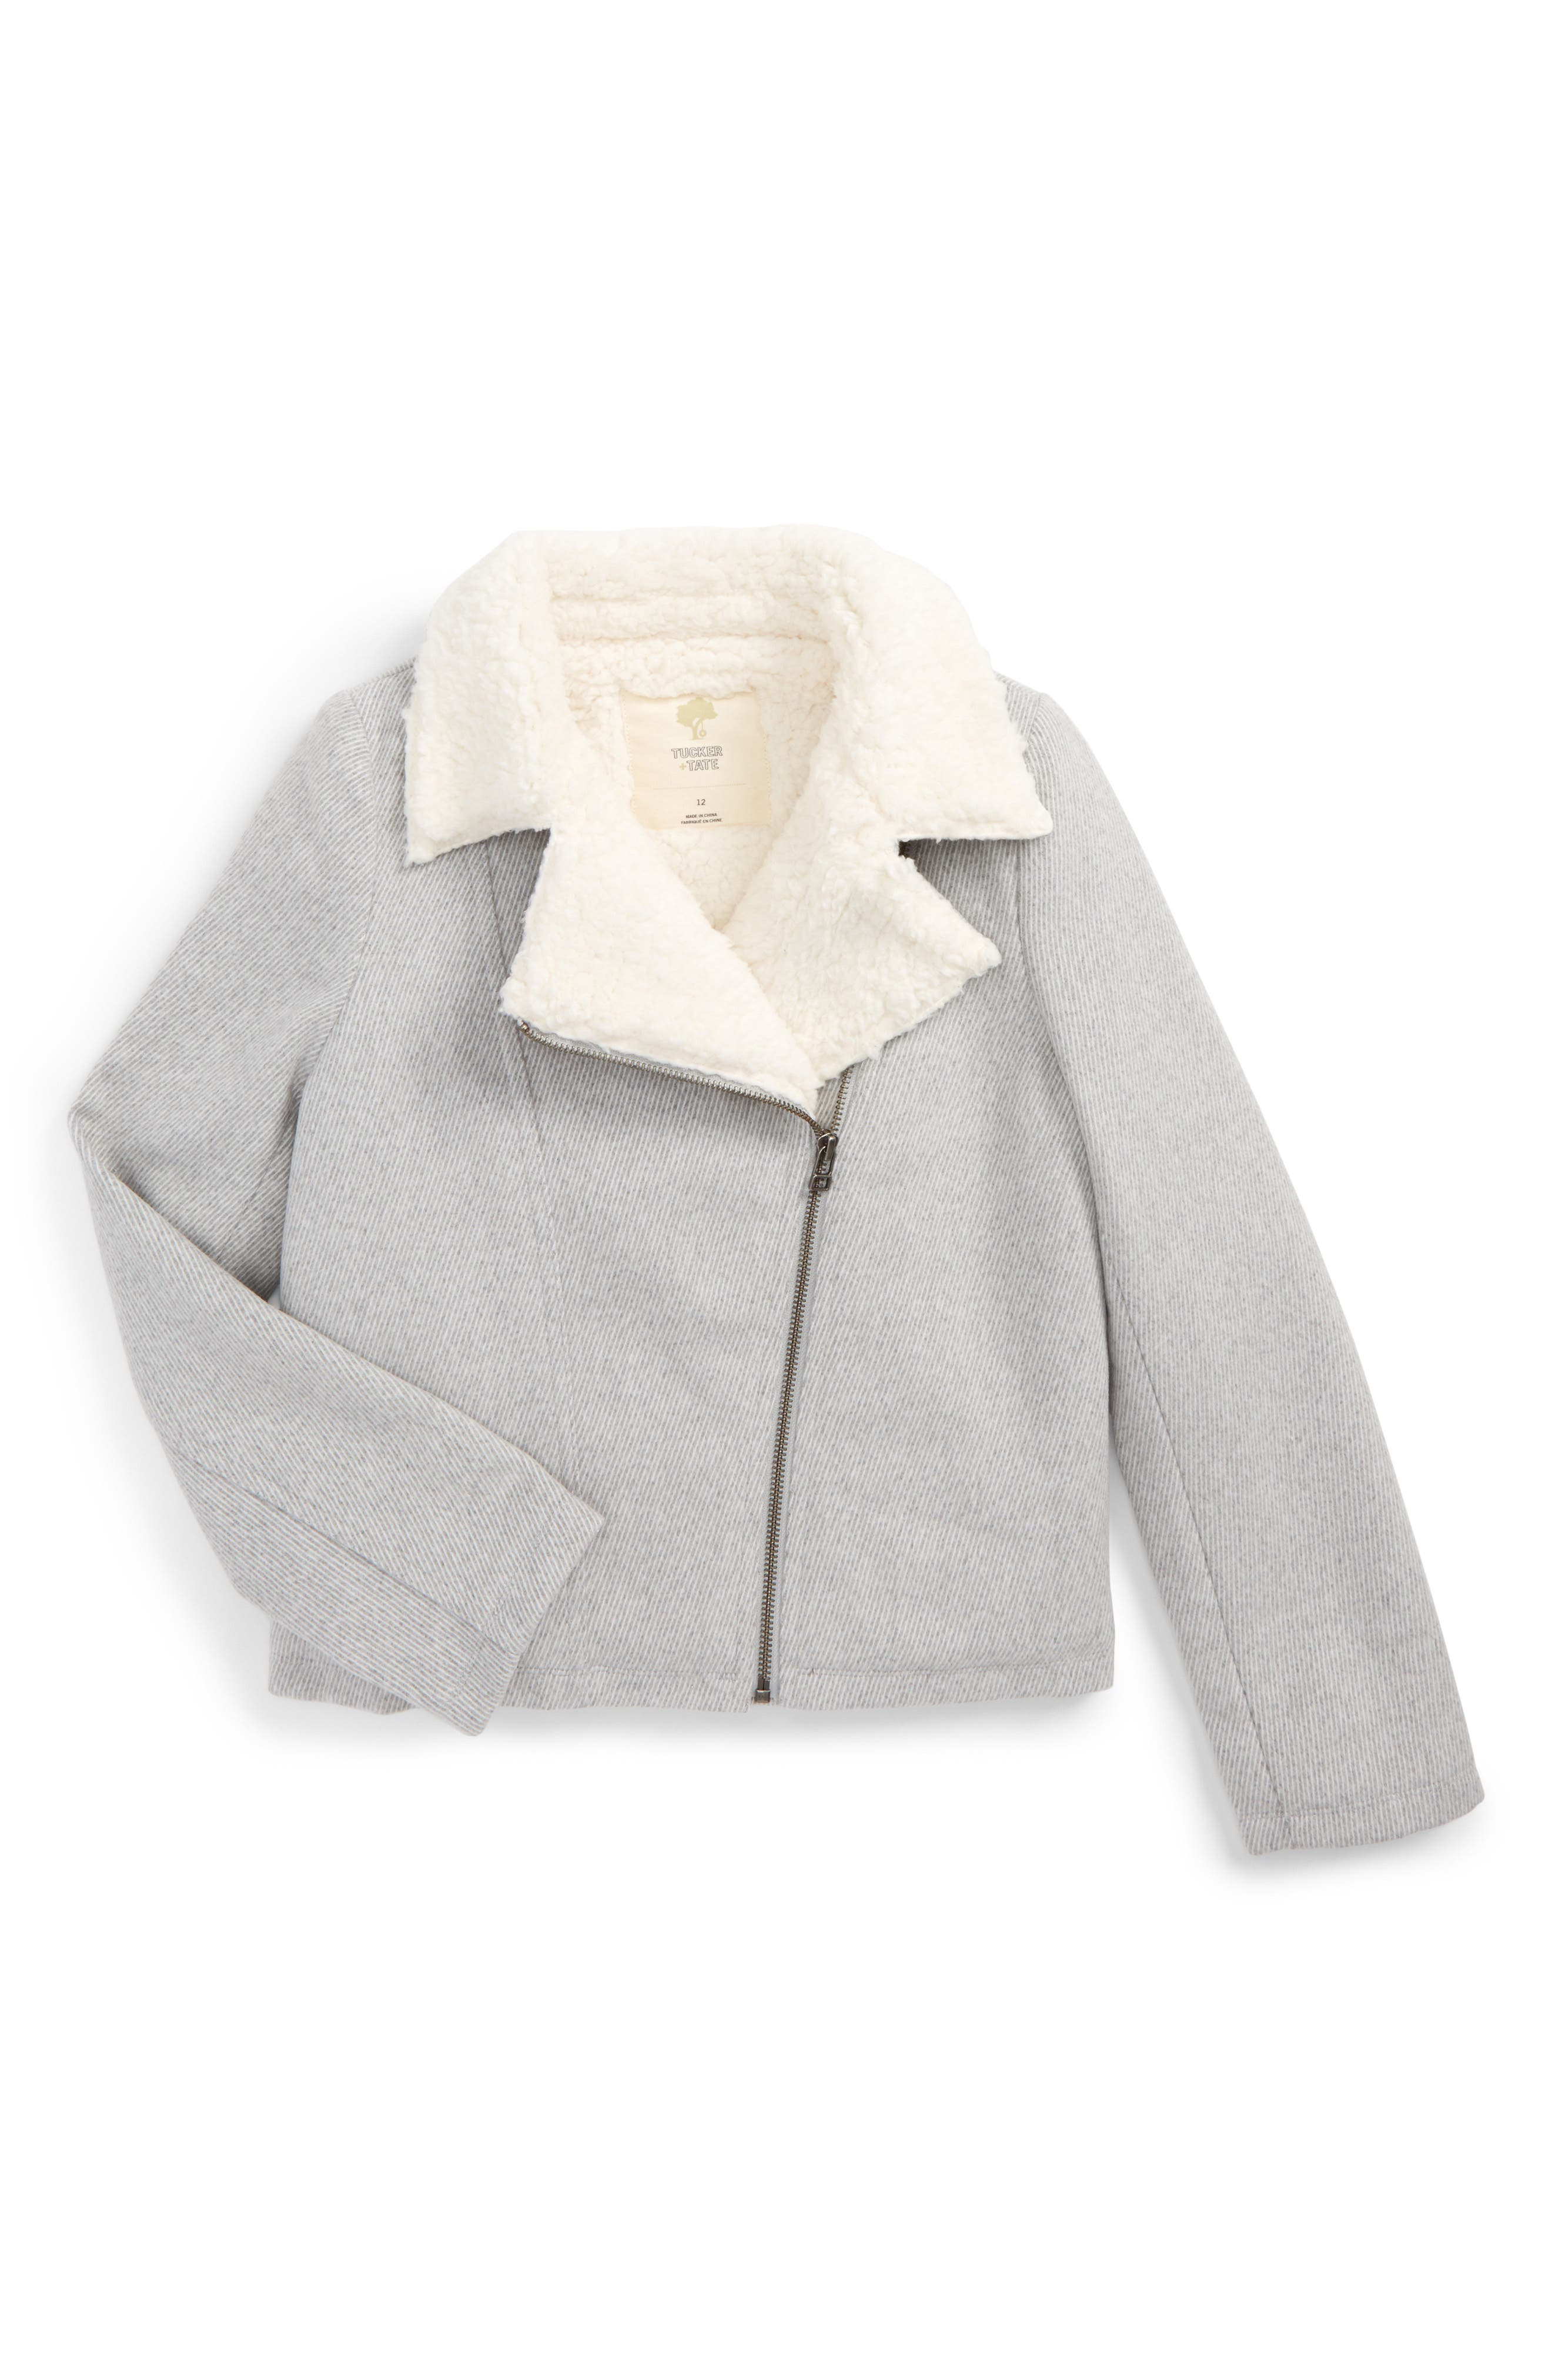 Alternate Image 1 Selected - Tucker + Tate Knit Moto Jacket with Faux Fur Lining (Big Girls)